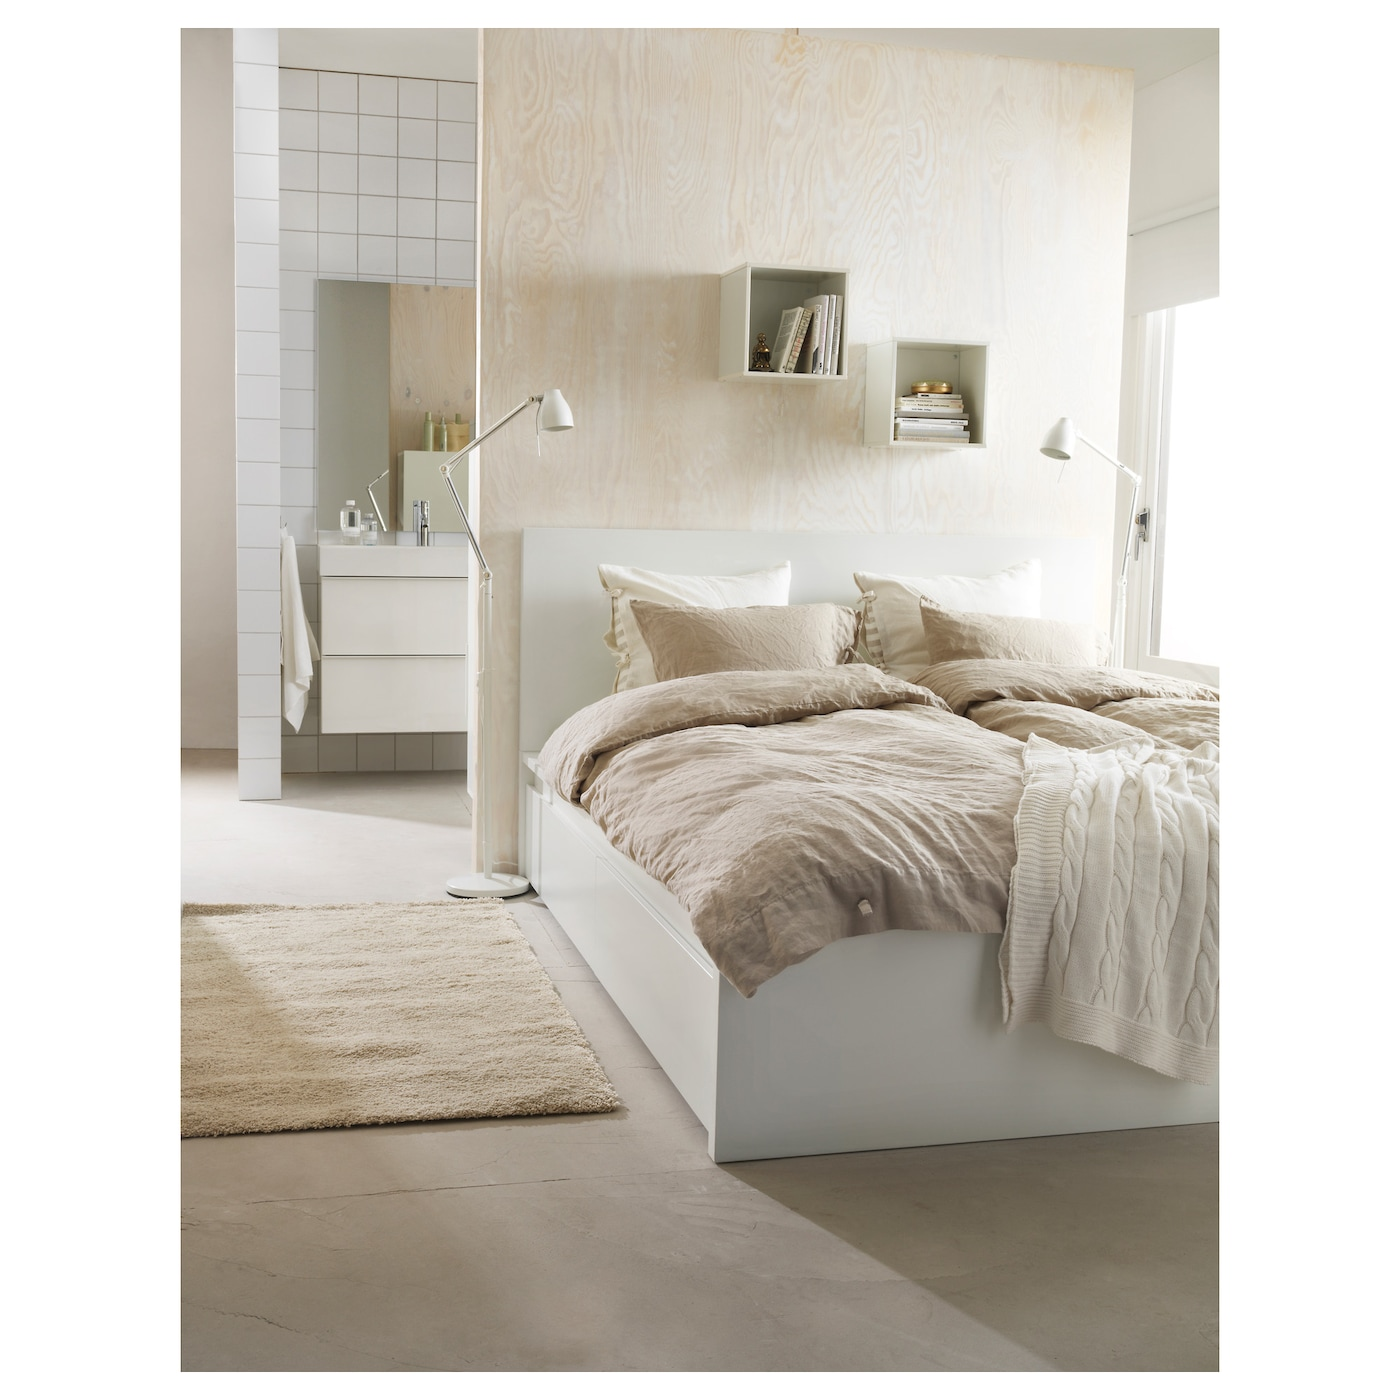 Ikea Bedroom Sets King Two Bedroom Anime Bedroom Furniture Made Out Of Pallets Bedroom Design Ideas App: MALM Bed Frame, High, W 2 Storage Boxes White/luröy